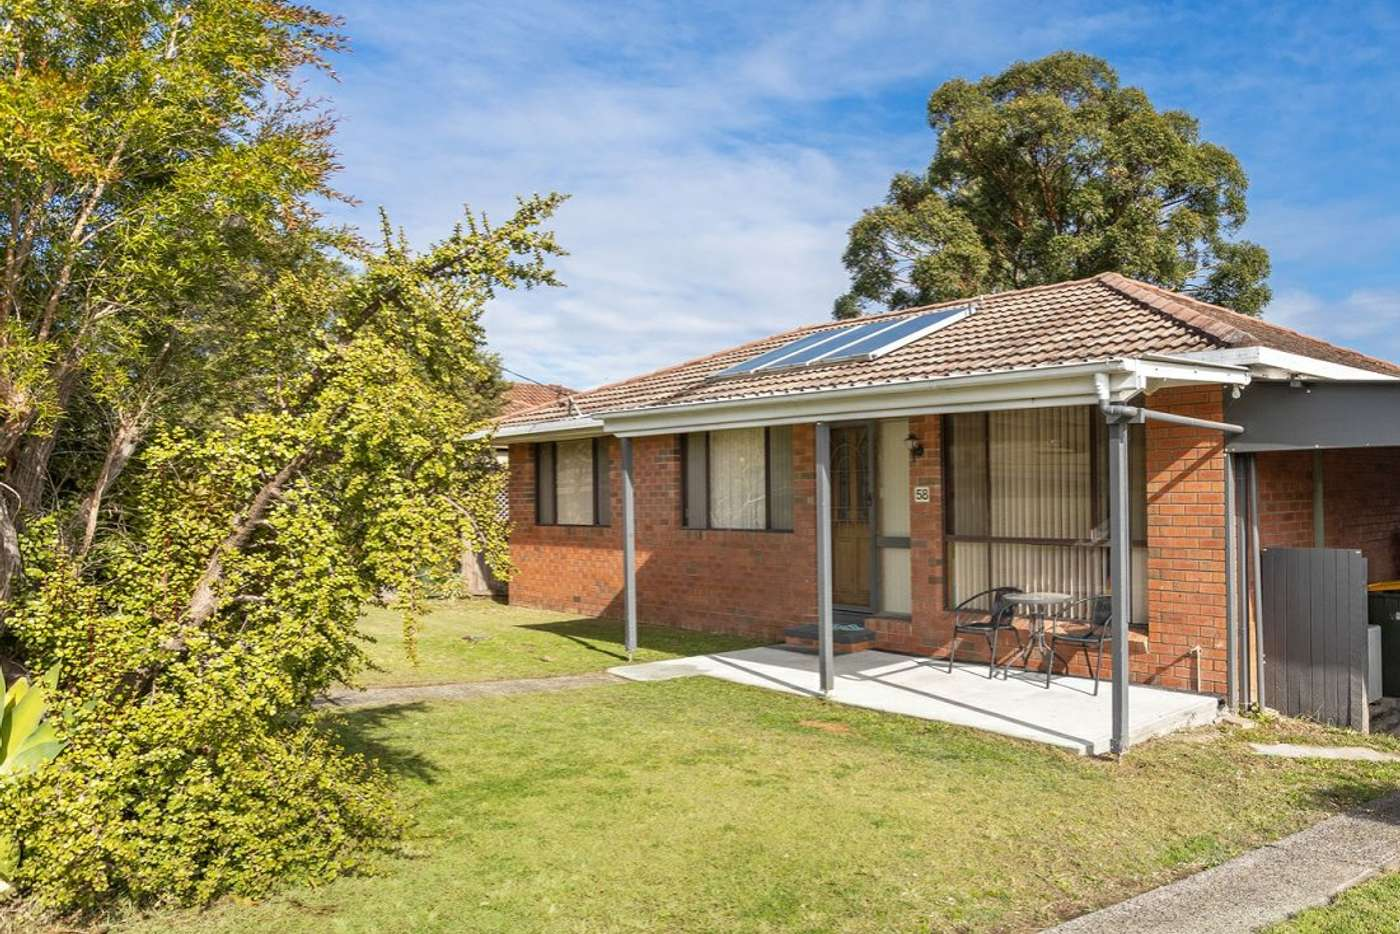 Main view of Homely house listing, 58 Lambert Street, Wingham NSW 2429